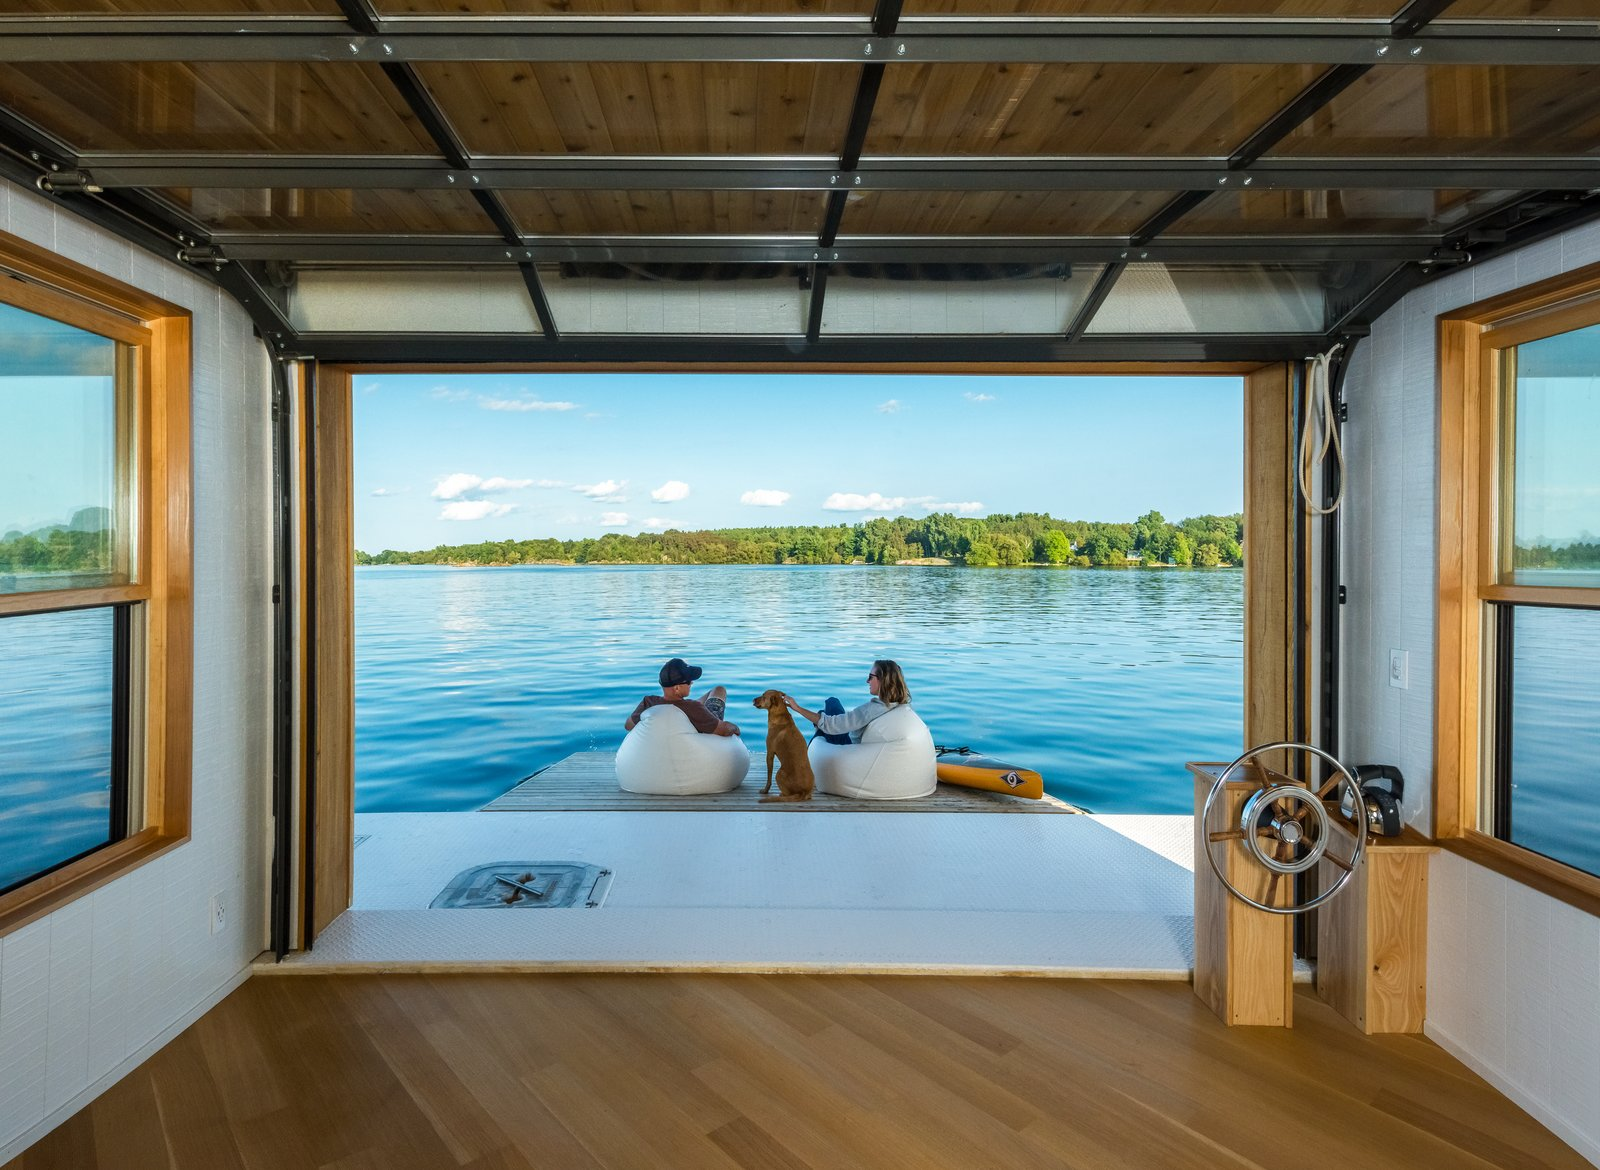 Medium Hardwood Floor, Outdoor, and Infinity Pools, Tubs, Shower  The Barge Yacht